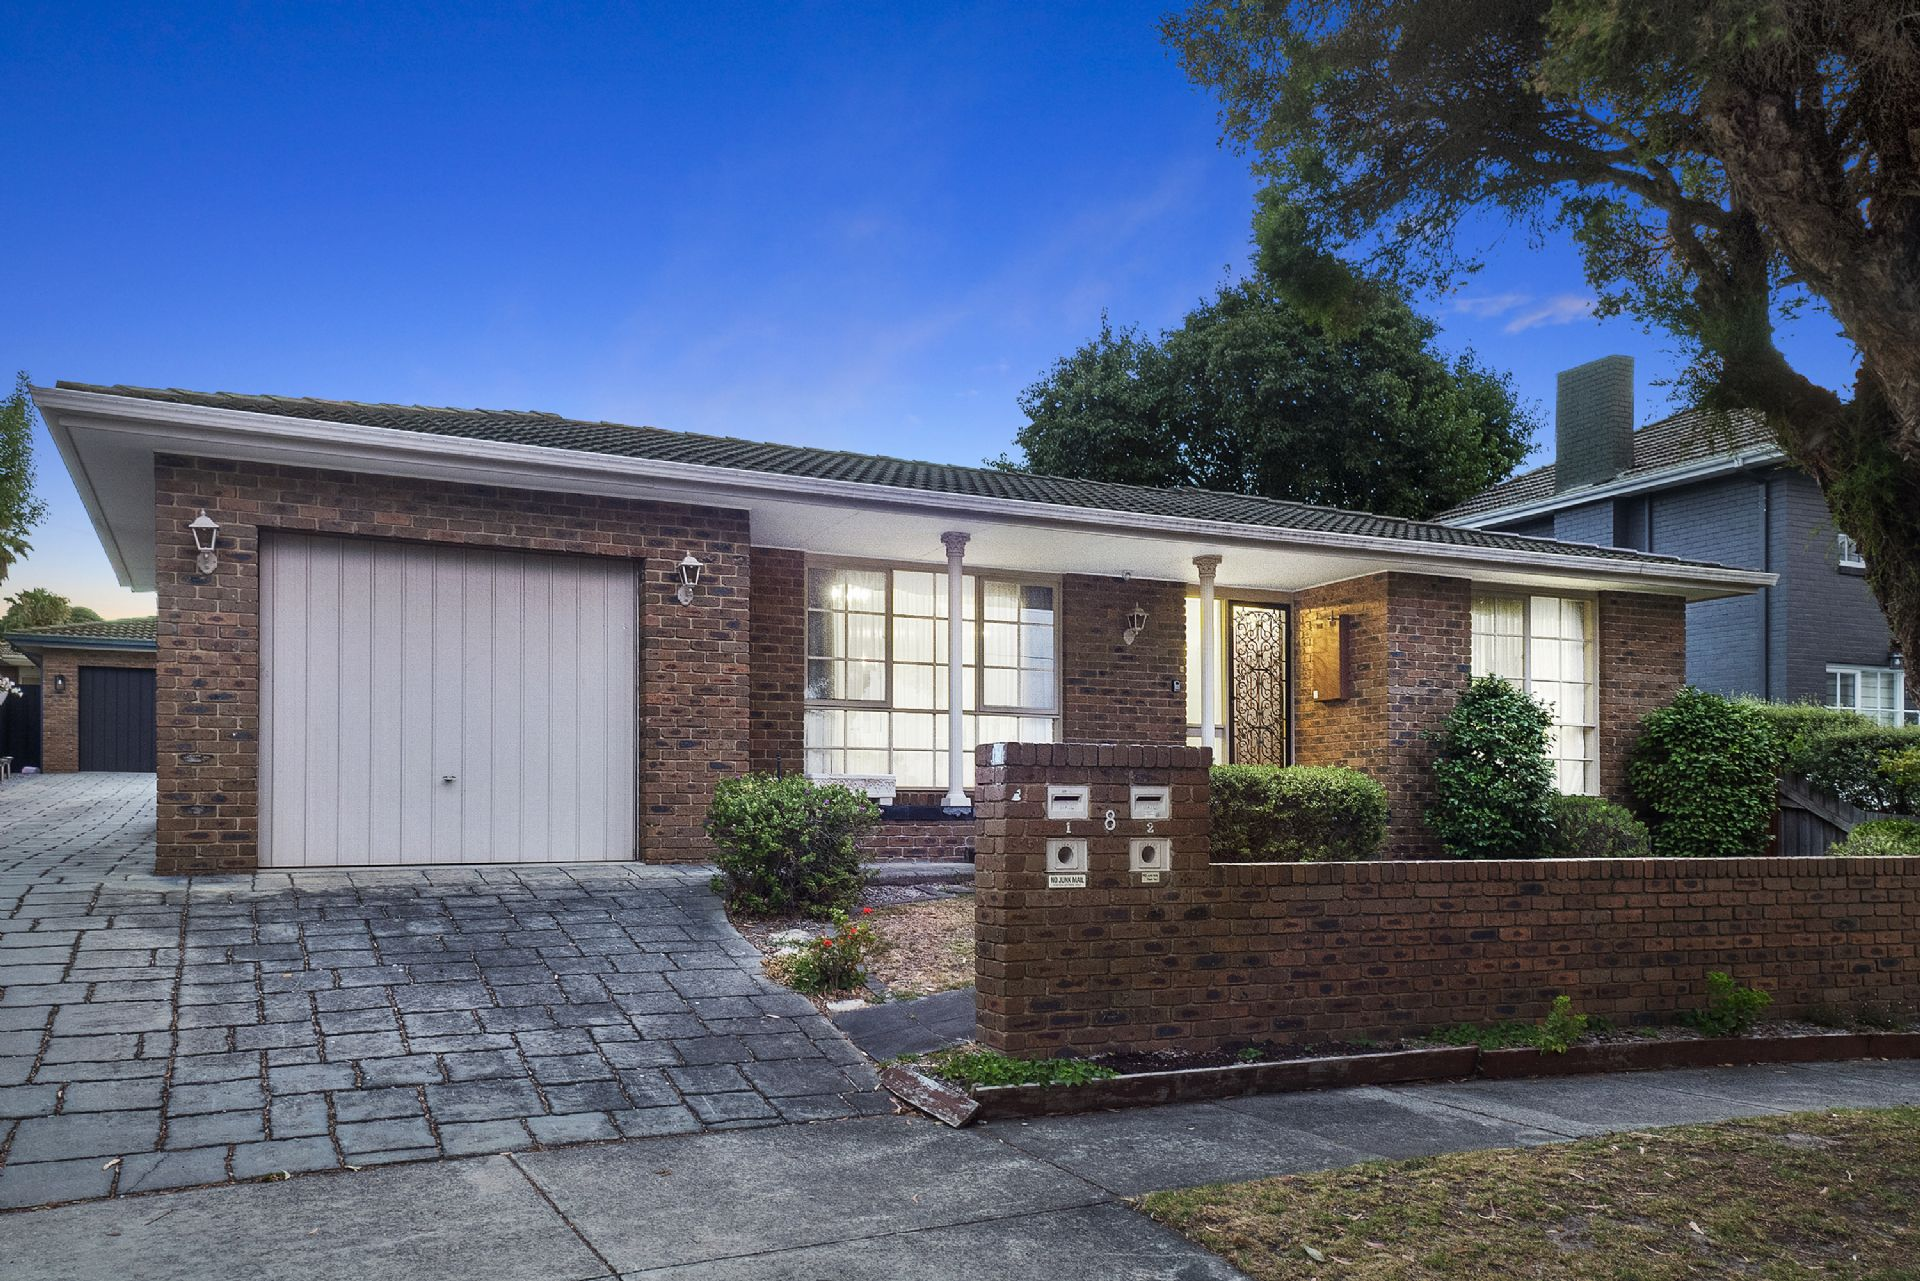 1/8 Palmerston Crescent, FRANKSTON SOUTH, VIC, 3199 - Image